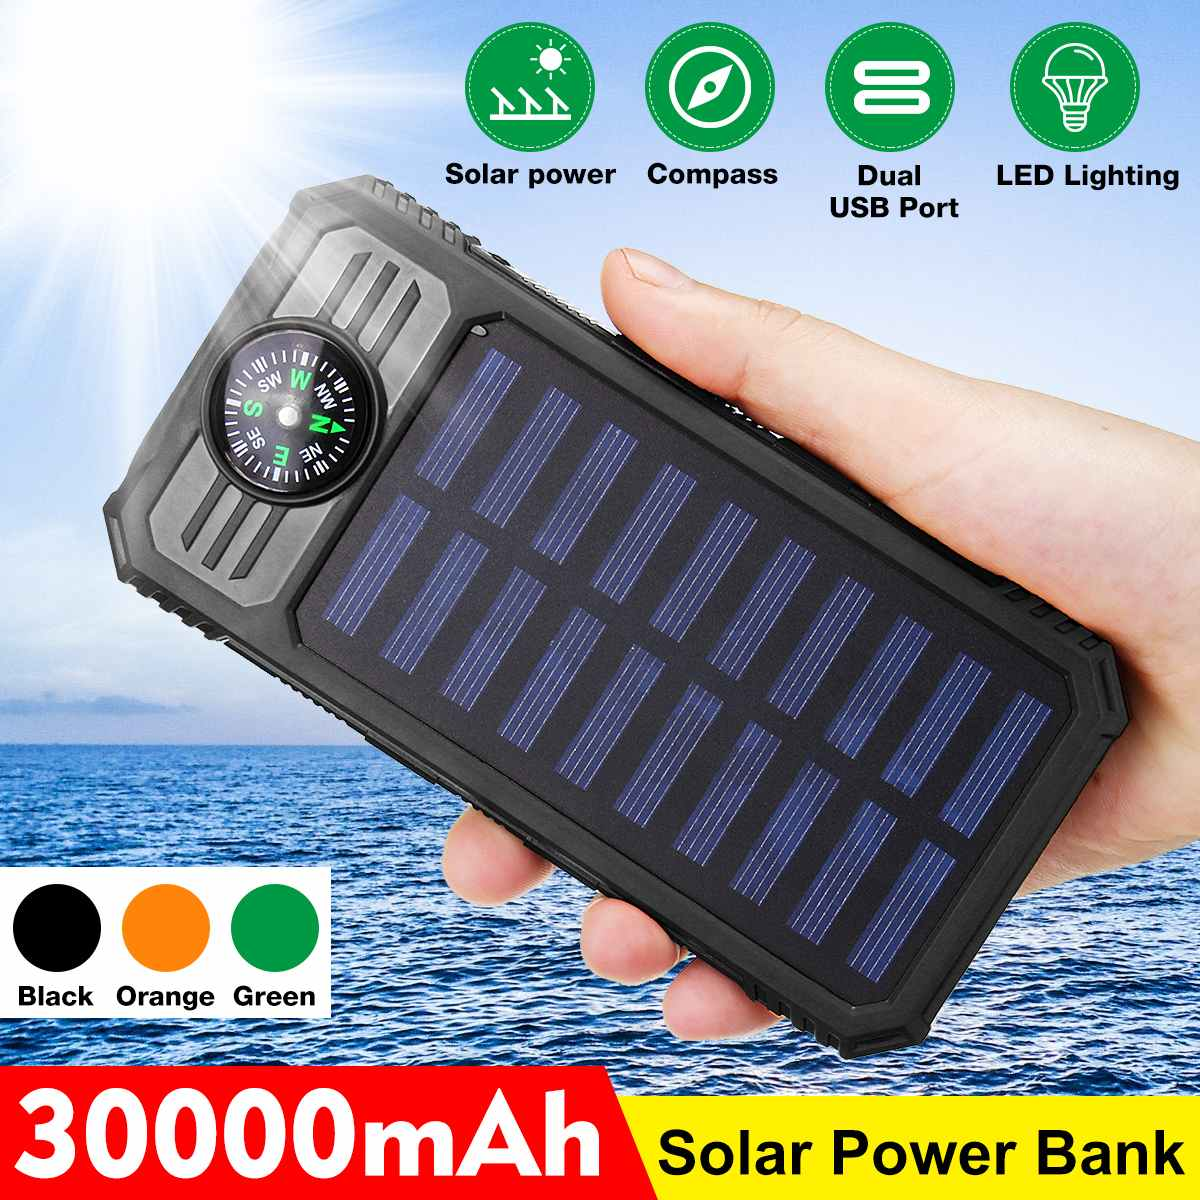 30000mah Solar Power Bank Waterproof Dual Usb Charger Port With Compasses LED Light External Charger Powerbank Phone Universal